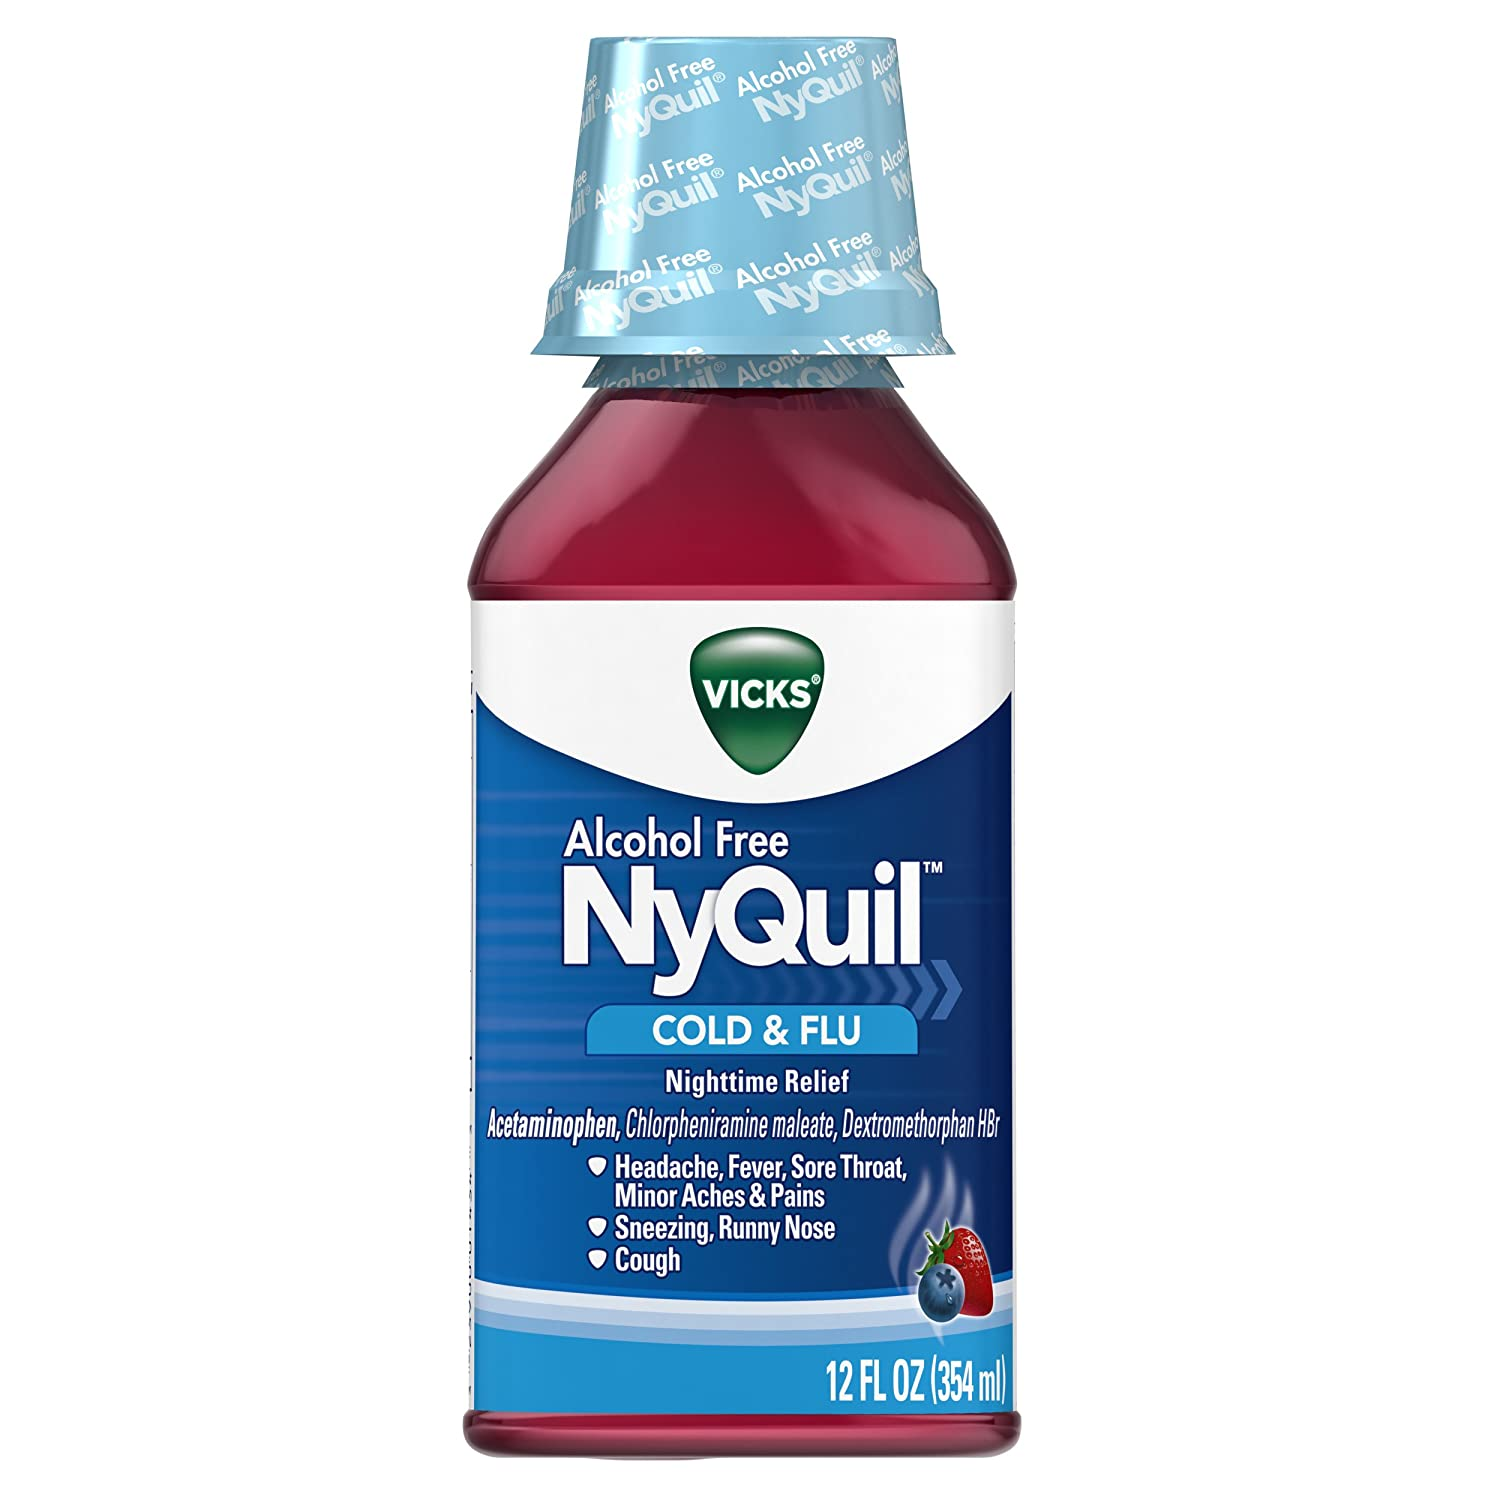 Vicks Nyquil Cough Cold And Flu Nighttime Relief Alcohol